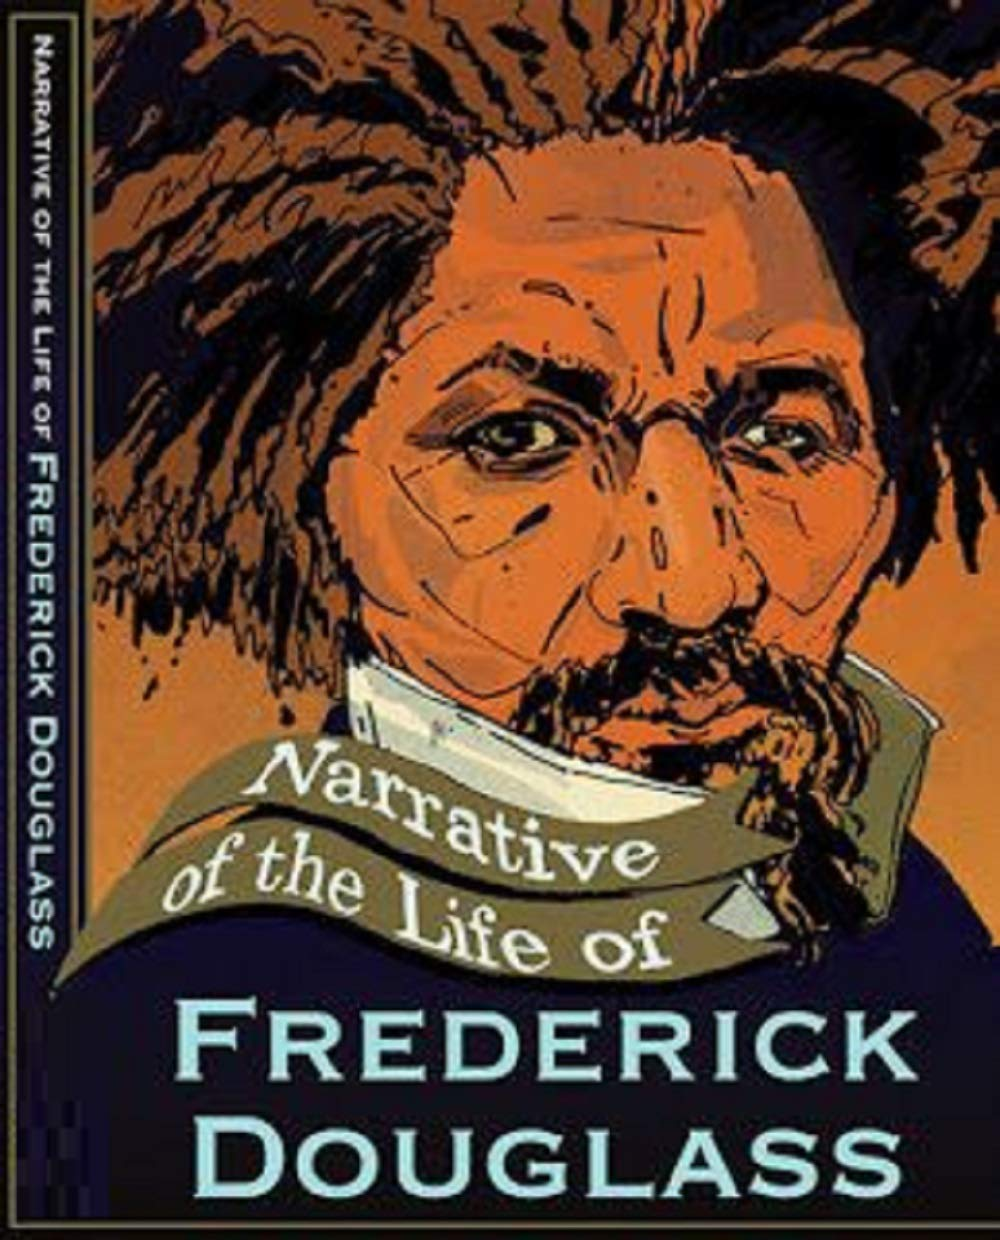 Narrative of the Life of Frederick Douglass Illustrated